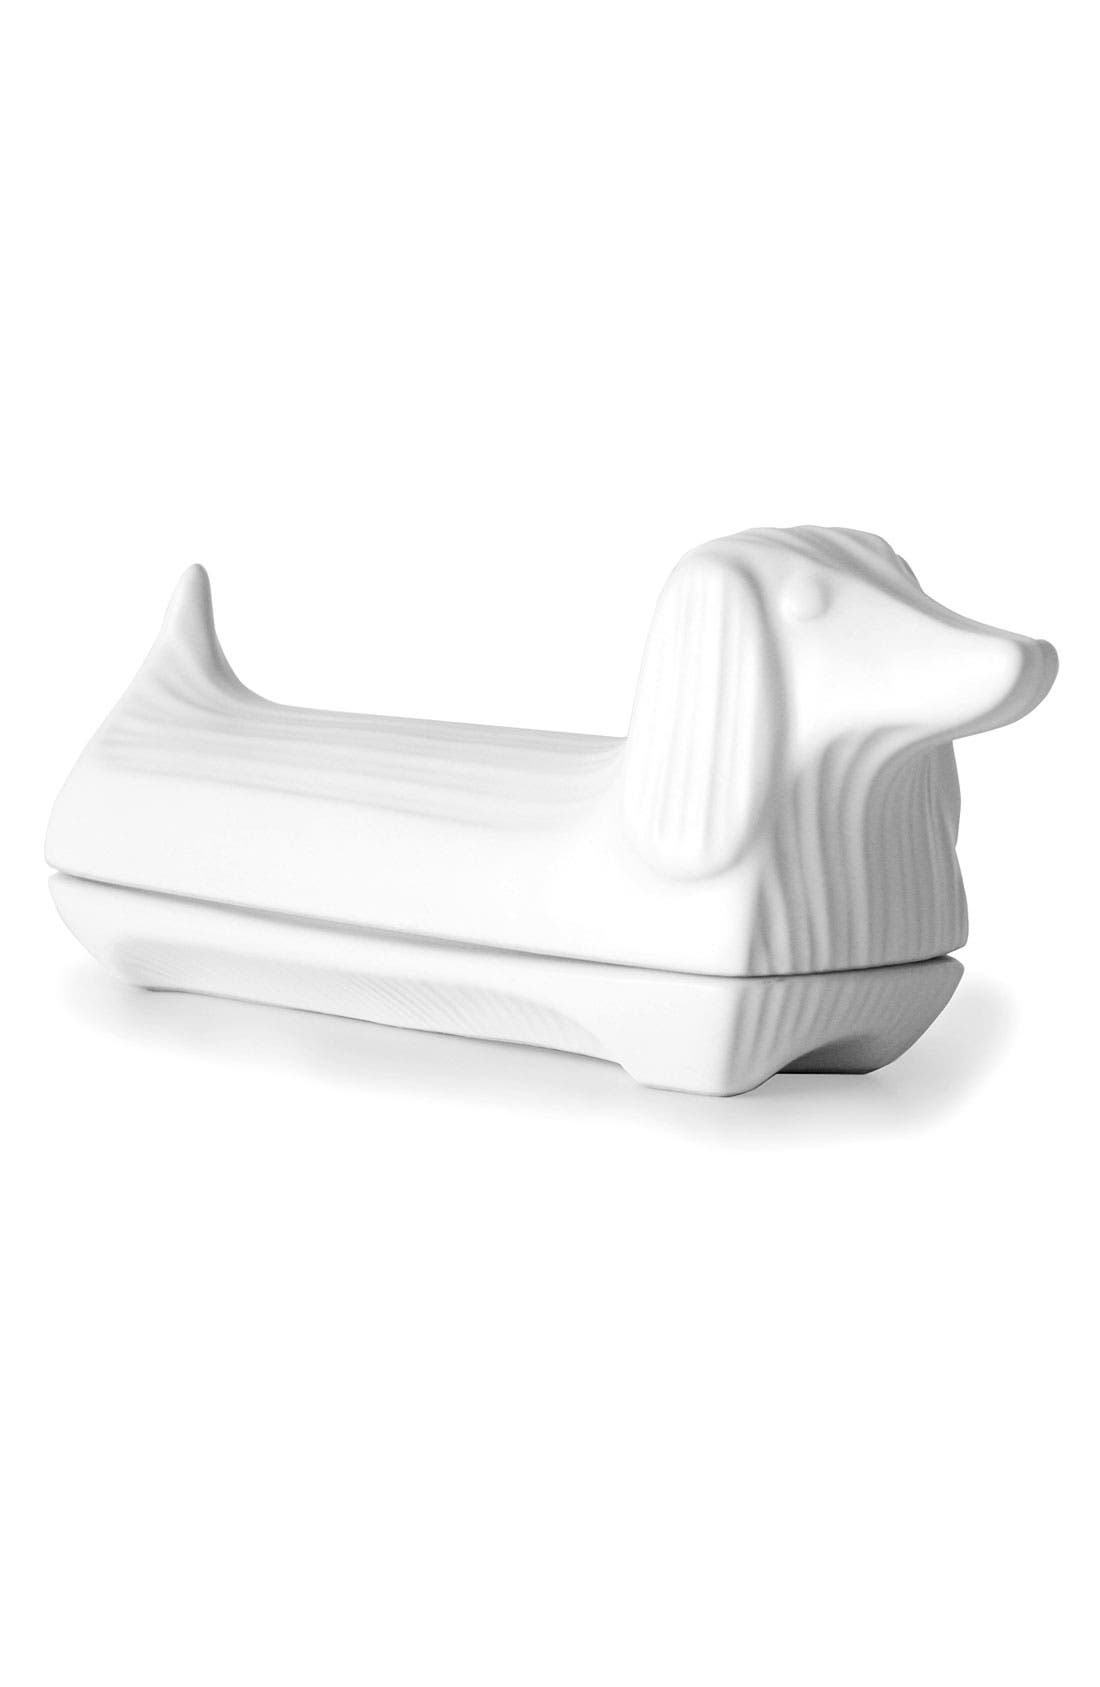 Alternate Image 1 Selected - Jonathan Adler Dachshund Butter Dish